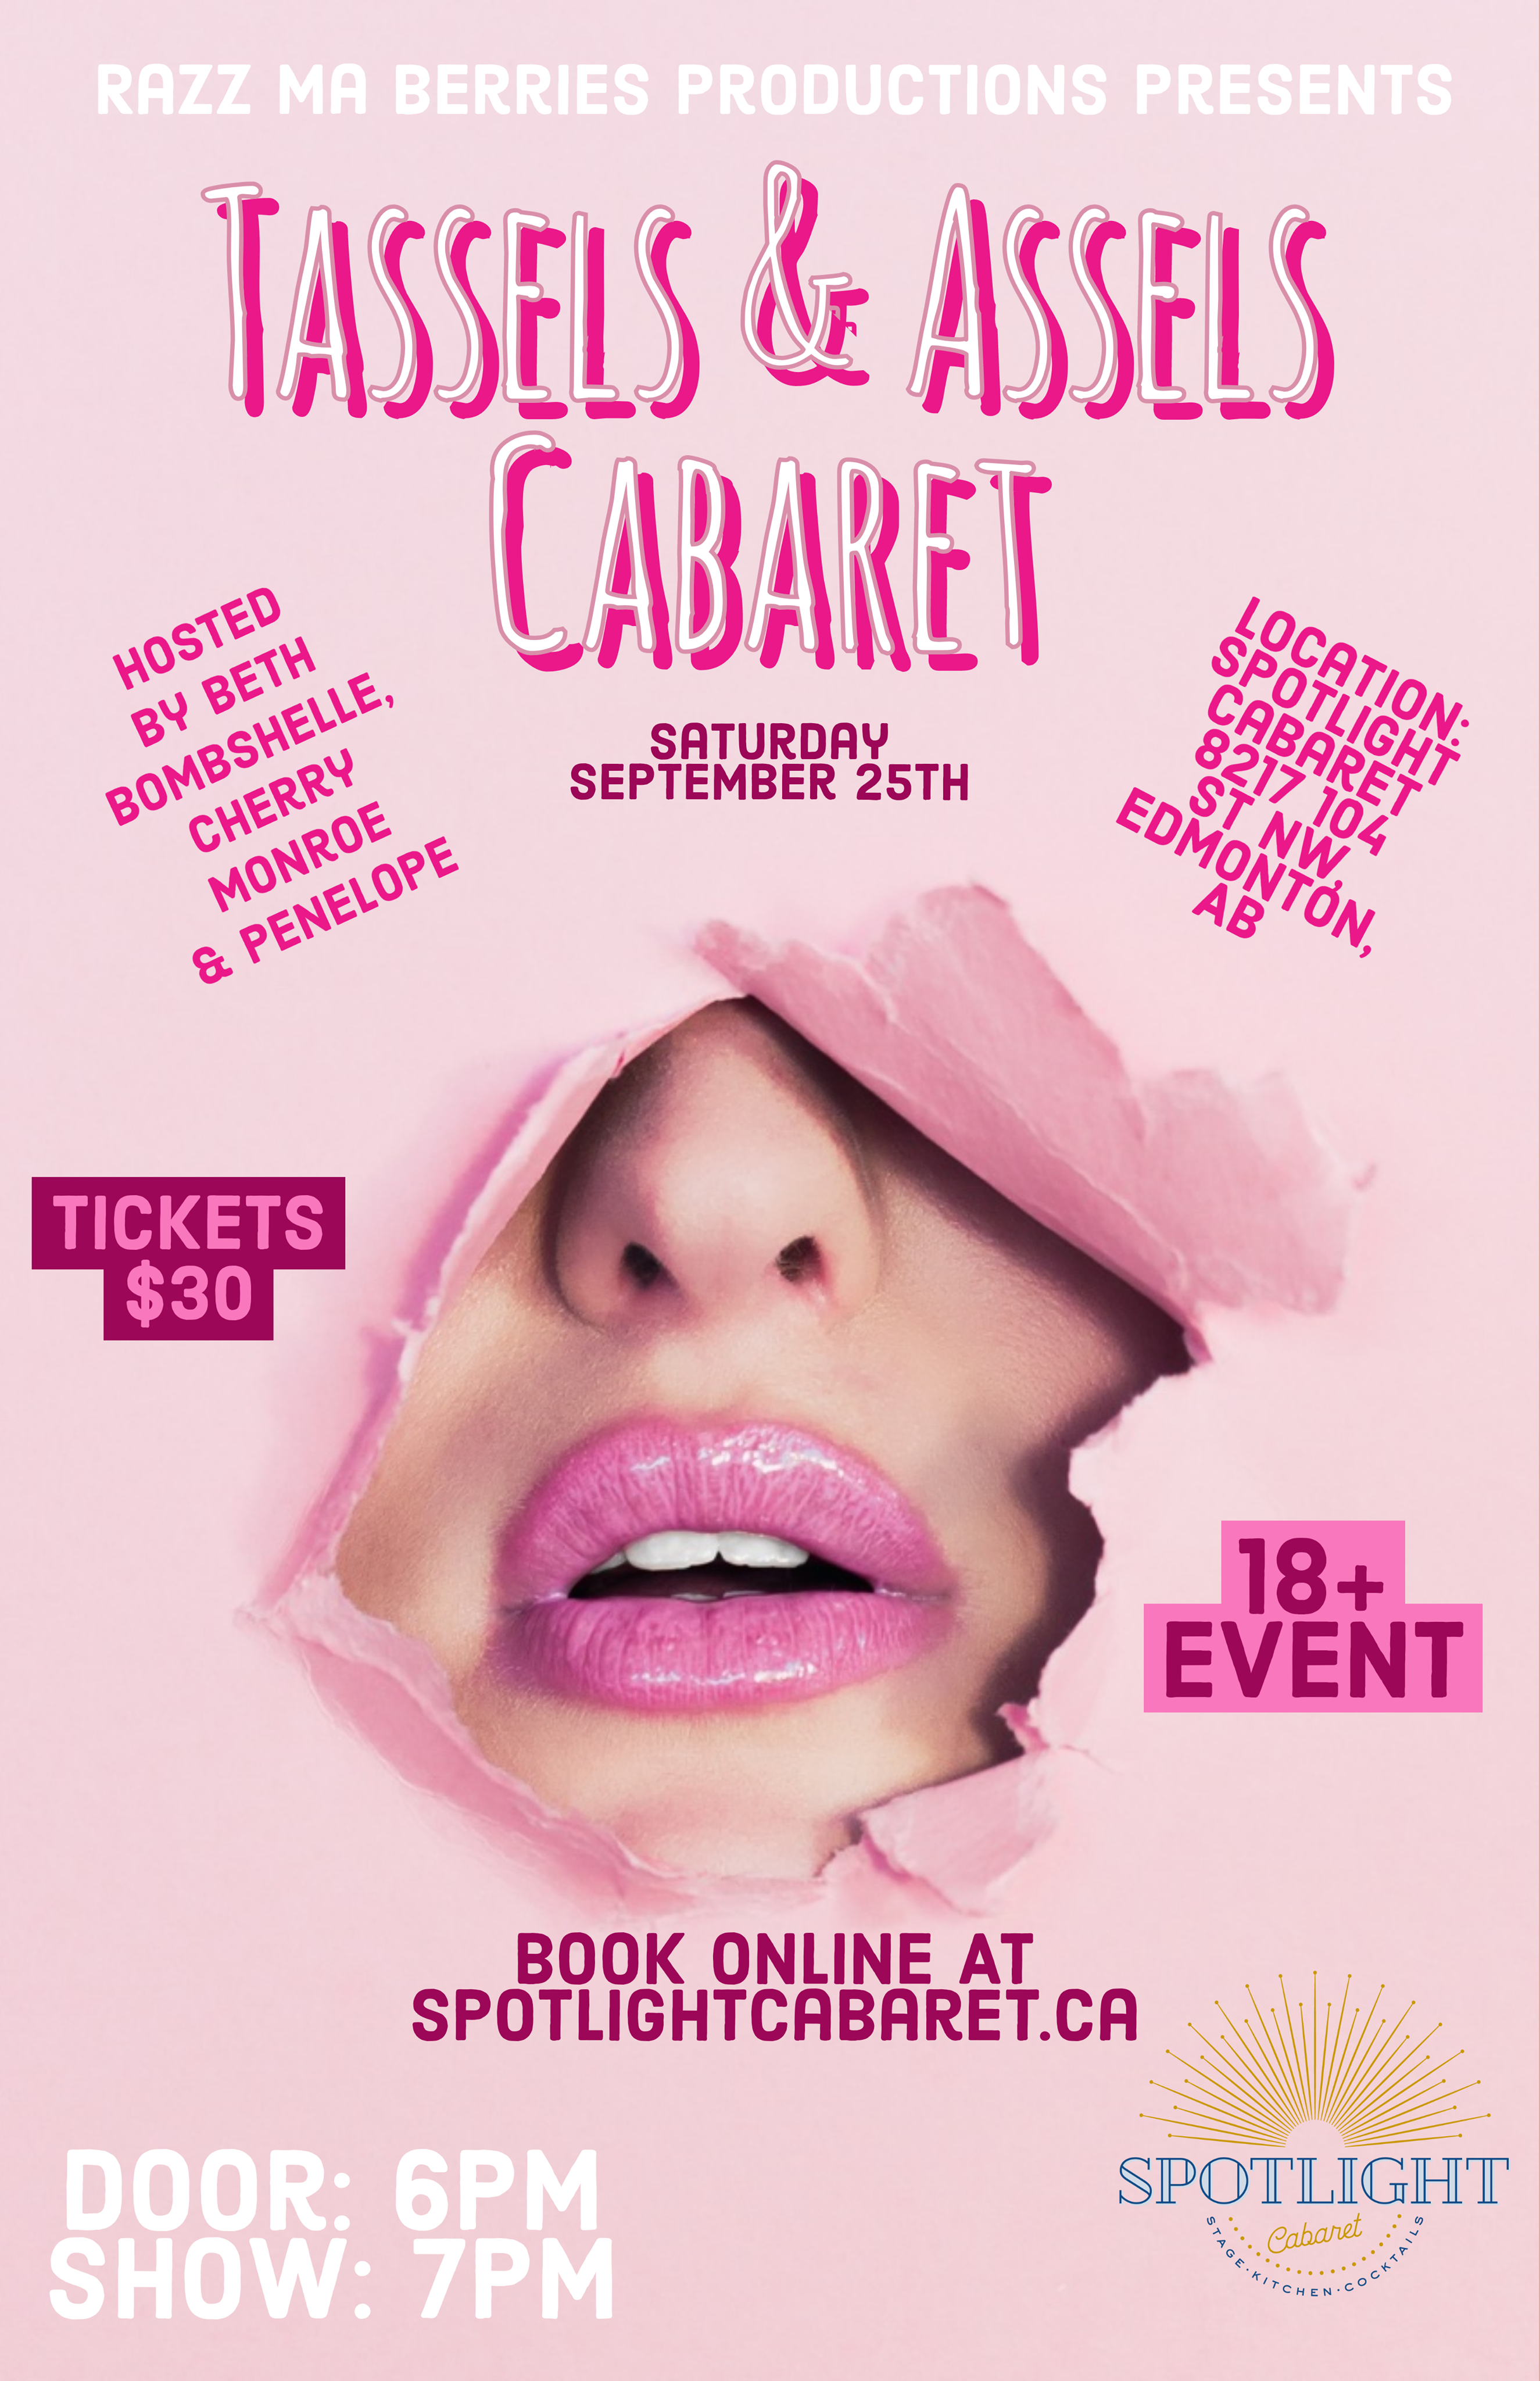 SOLD OUT - Raz Ma Berries Presents: Tassels and Assels Cabaret